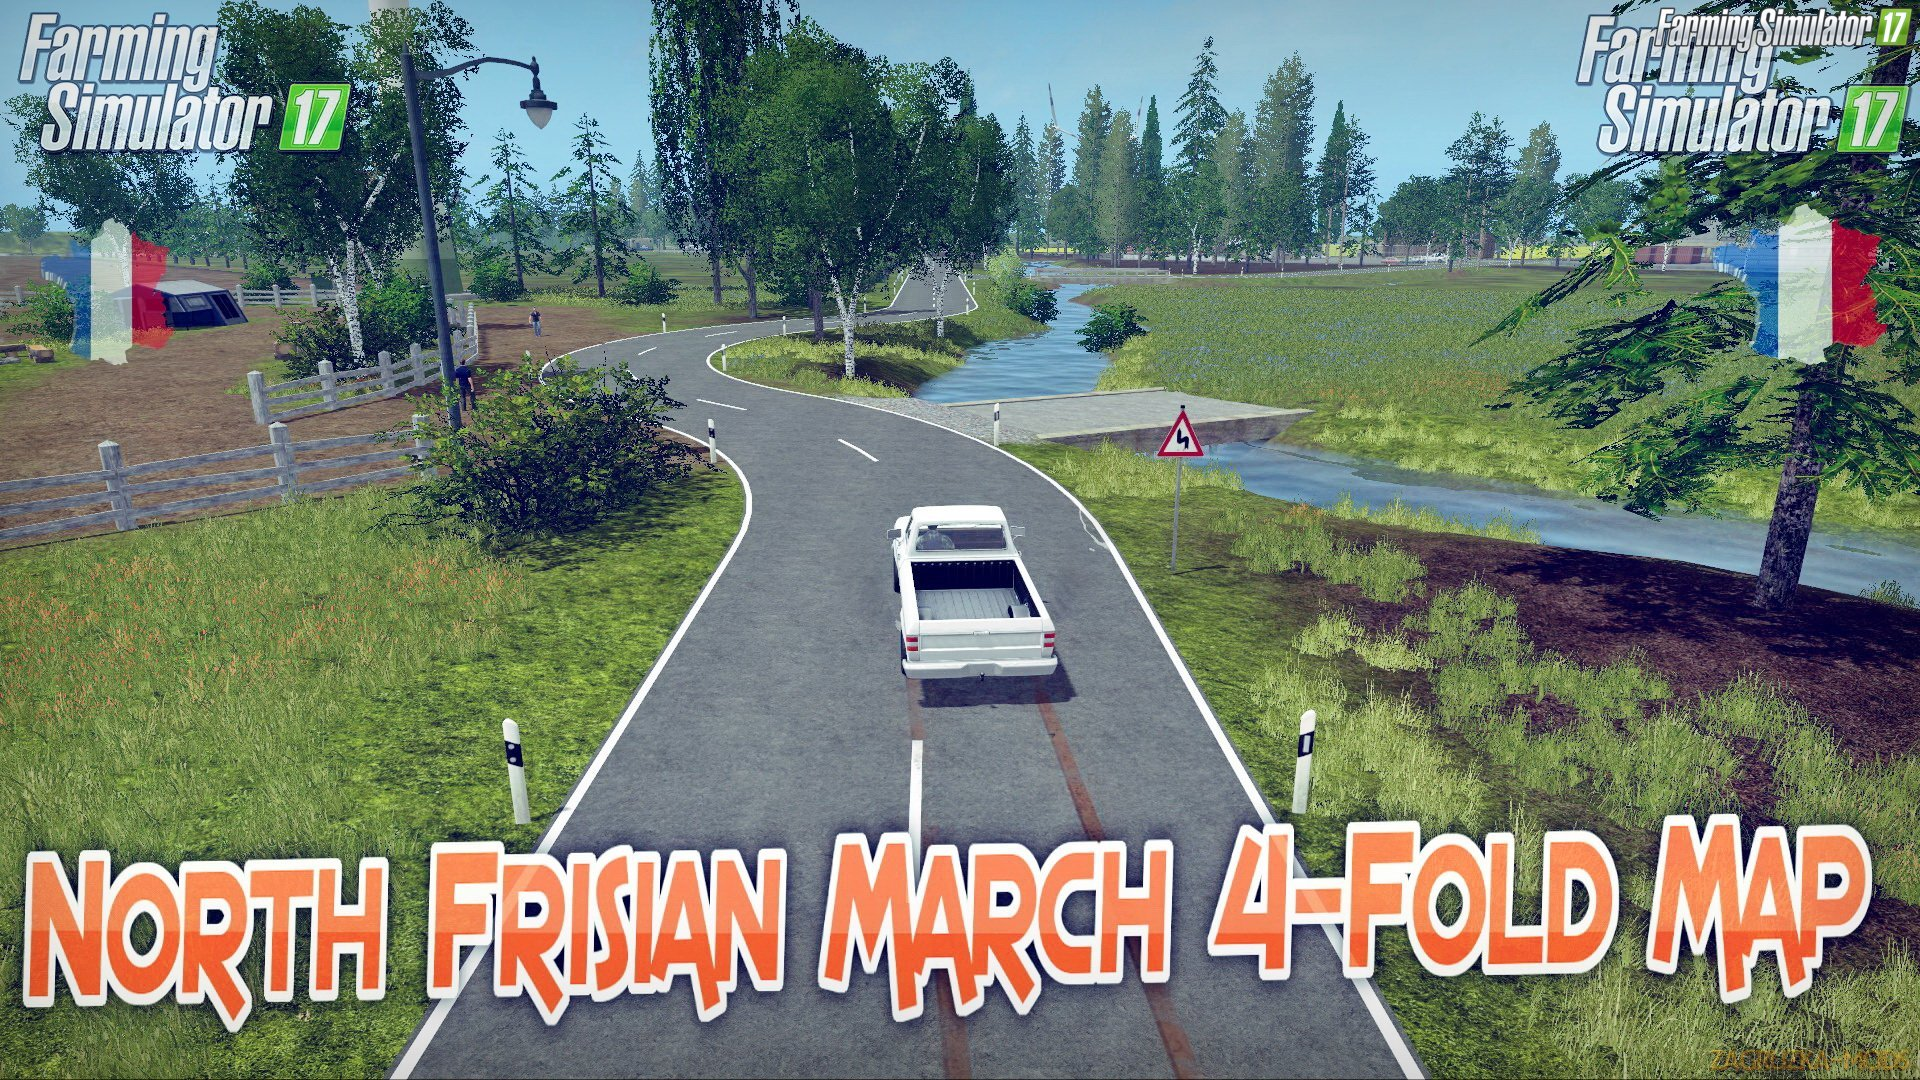 North Frisian March 4-Fold Map v1.8 for FS 17